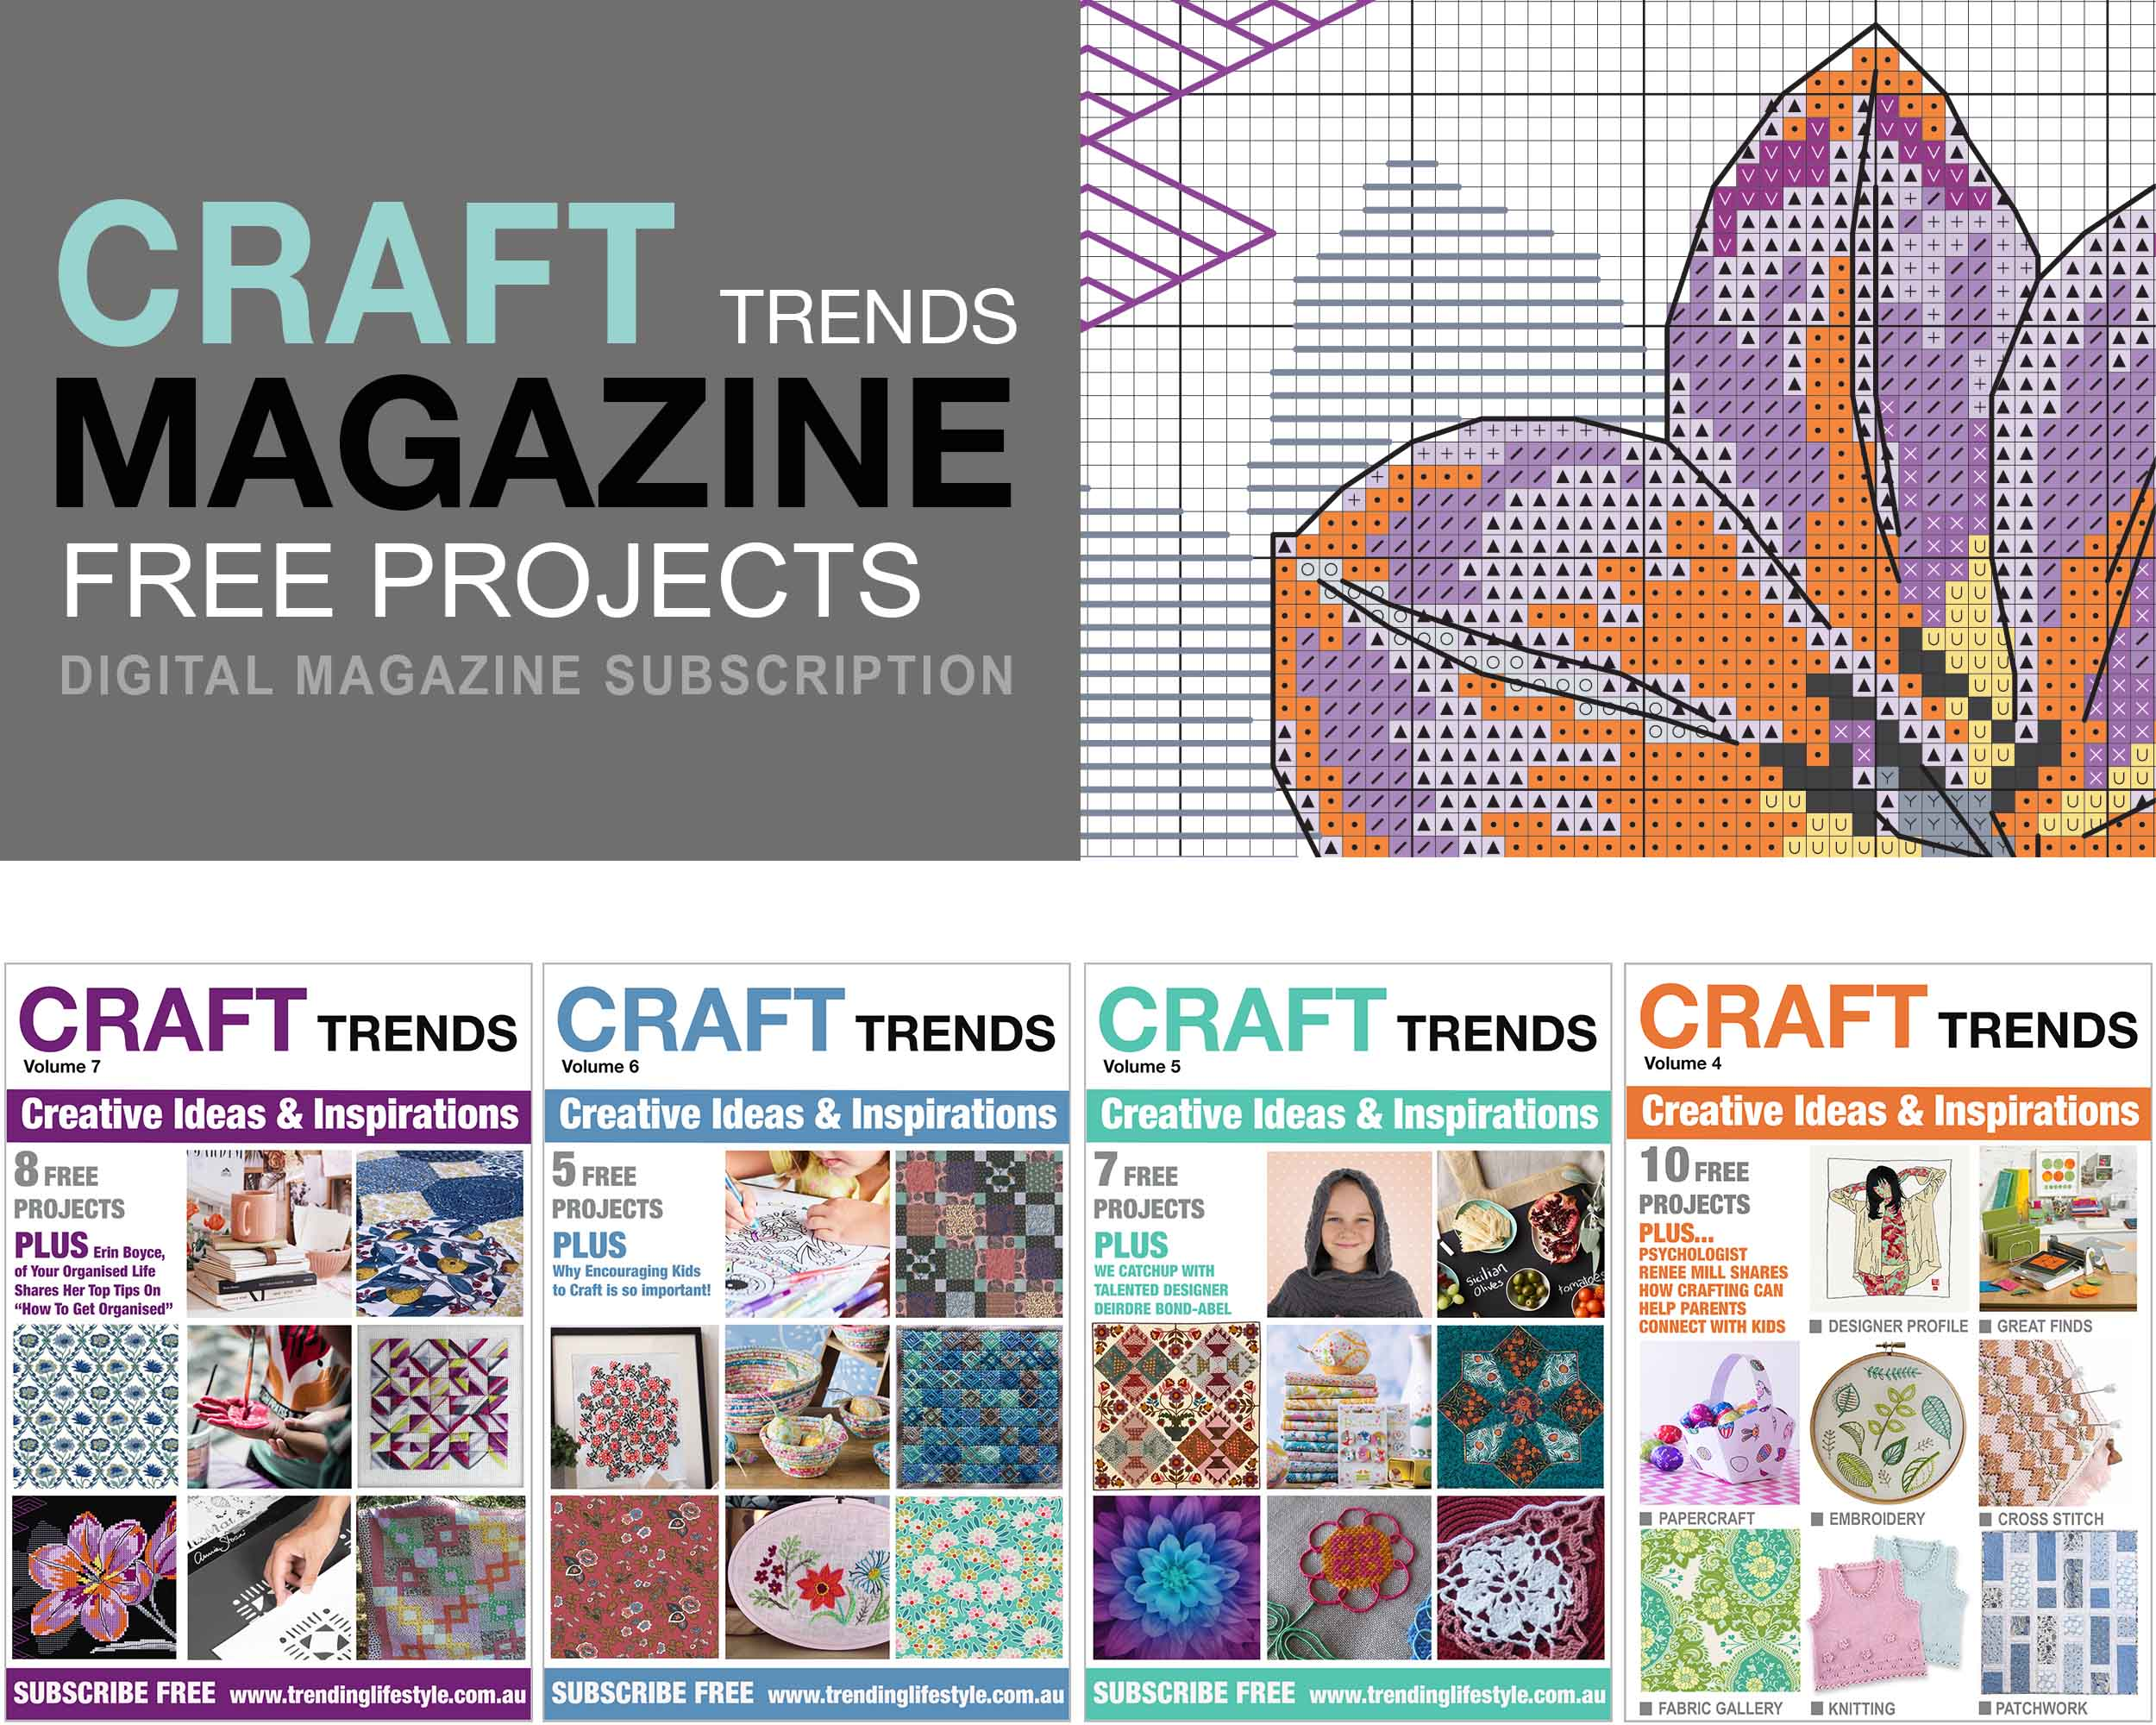 Craft Trends Magazine Free Projects